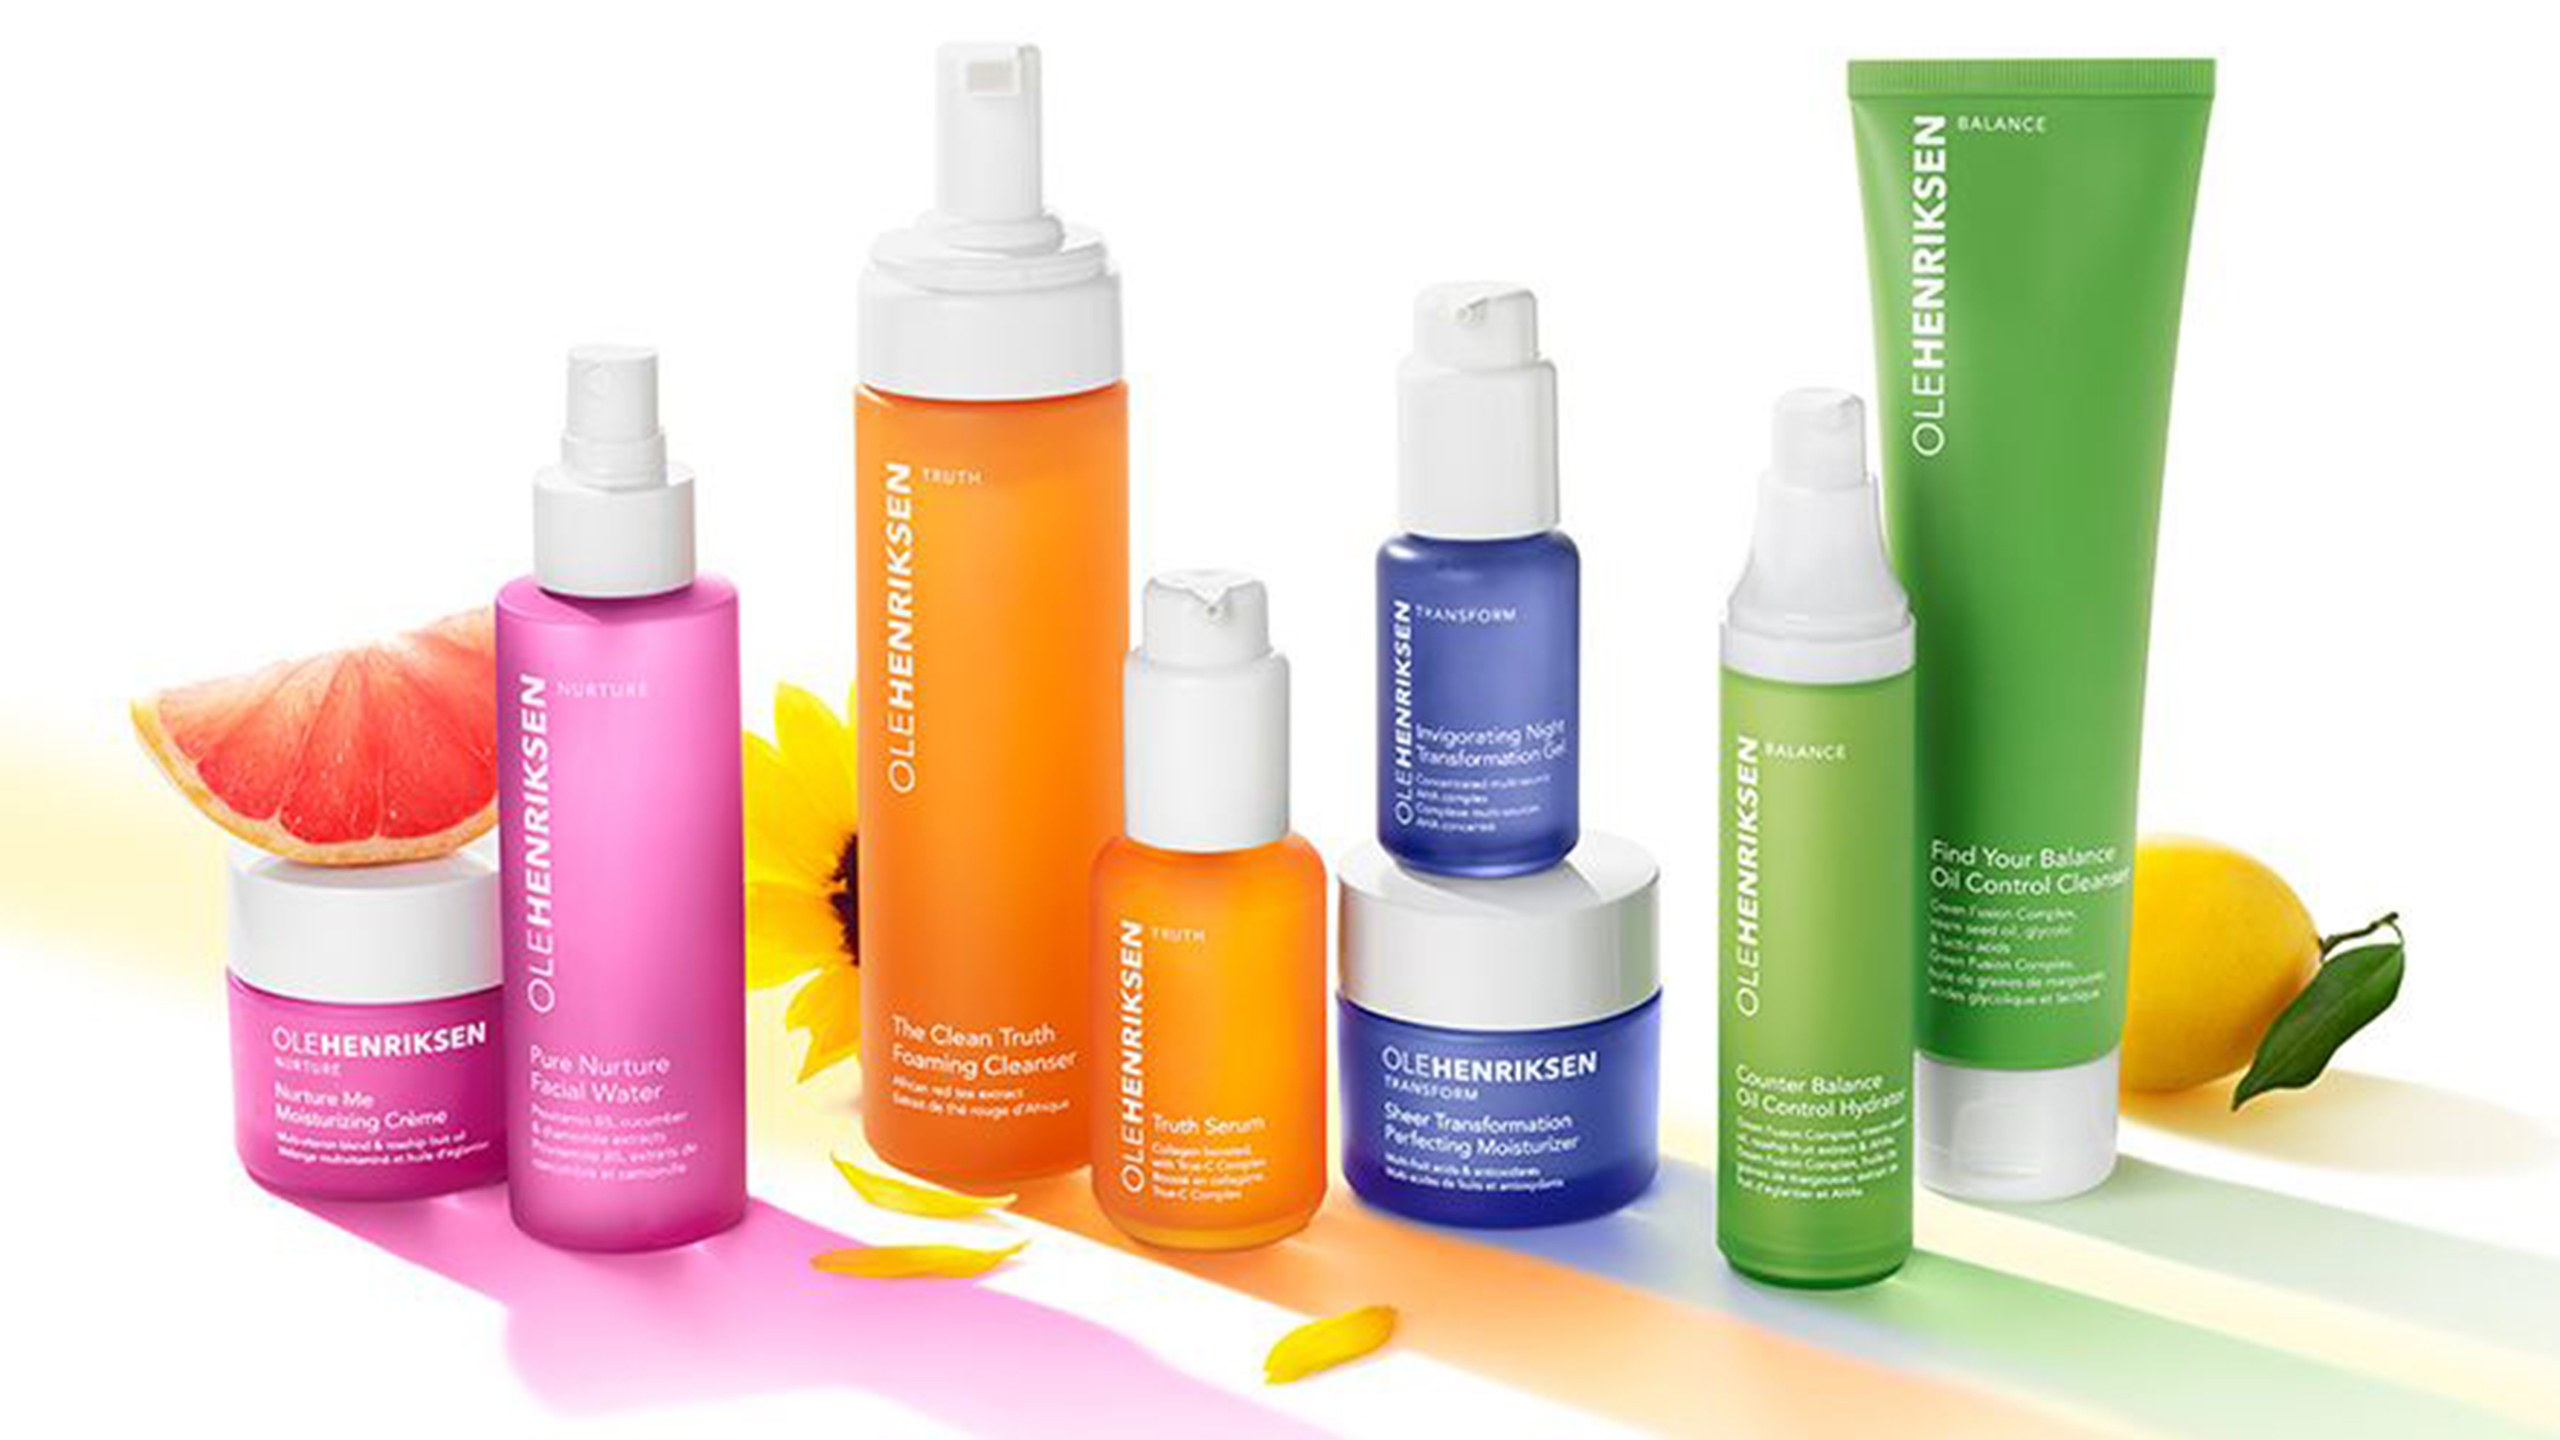 A colorful array of Ole Henriksen products with fruit.